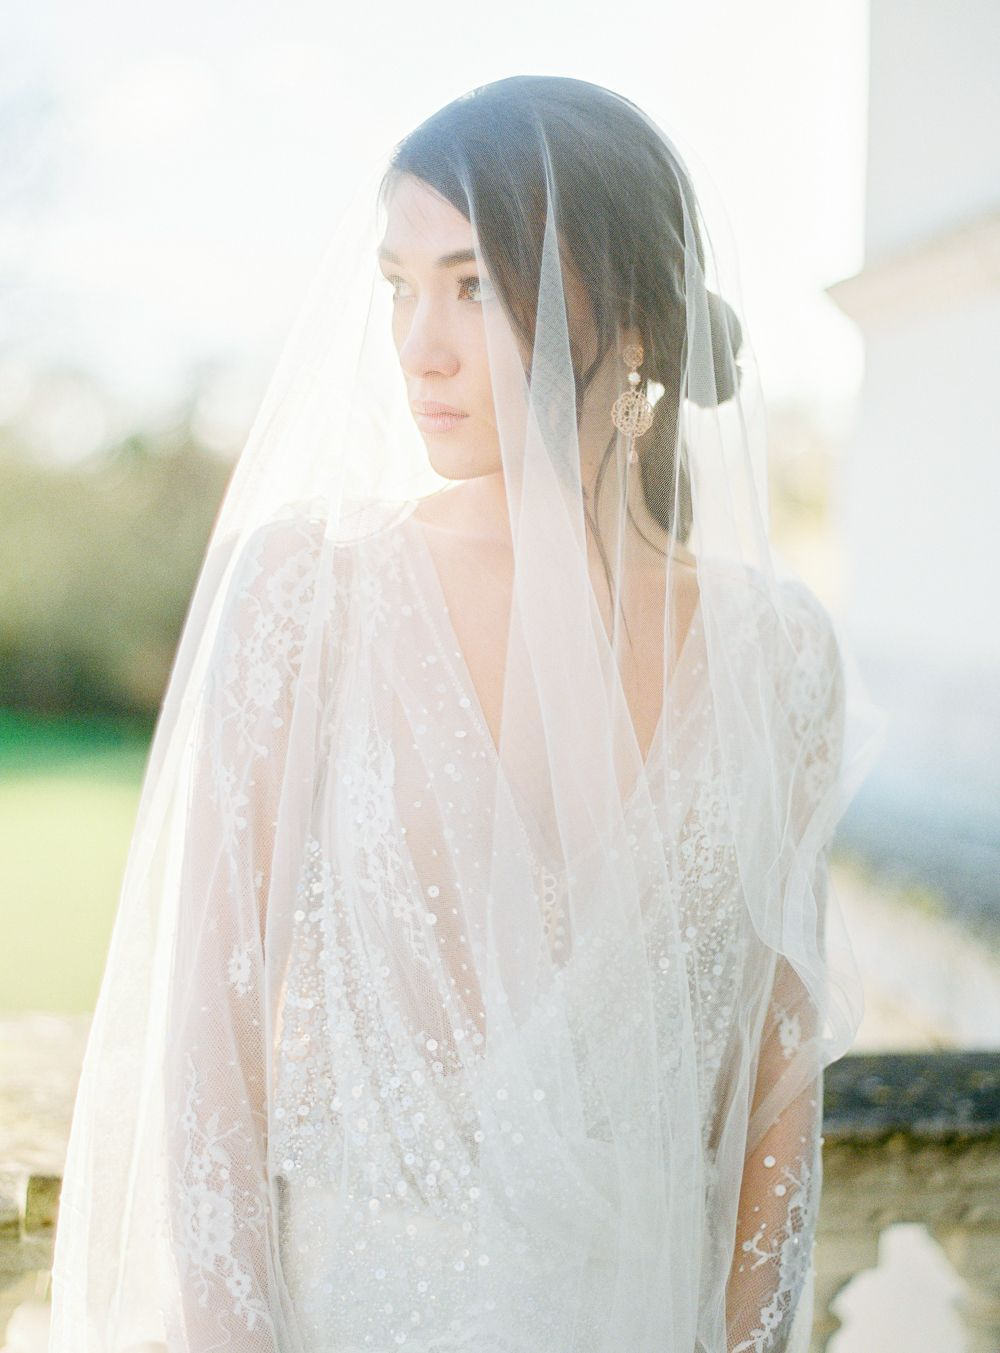 019Julie-Michaelsen-Photography_OnceWed